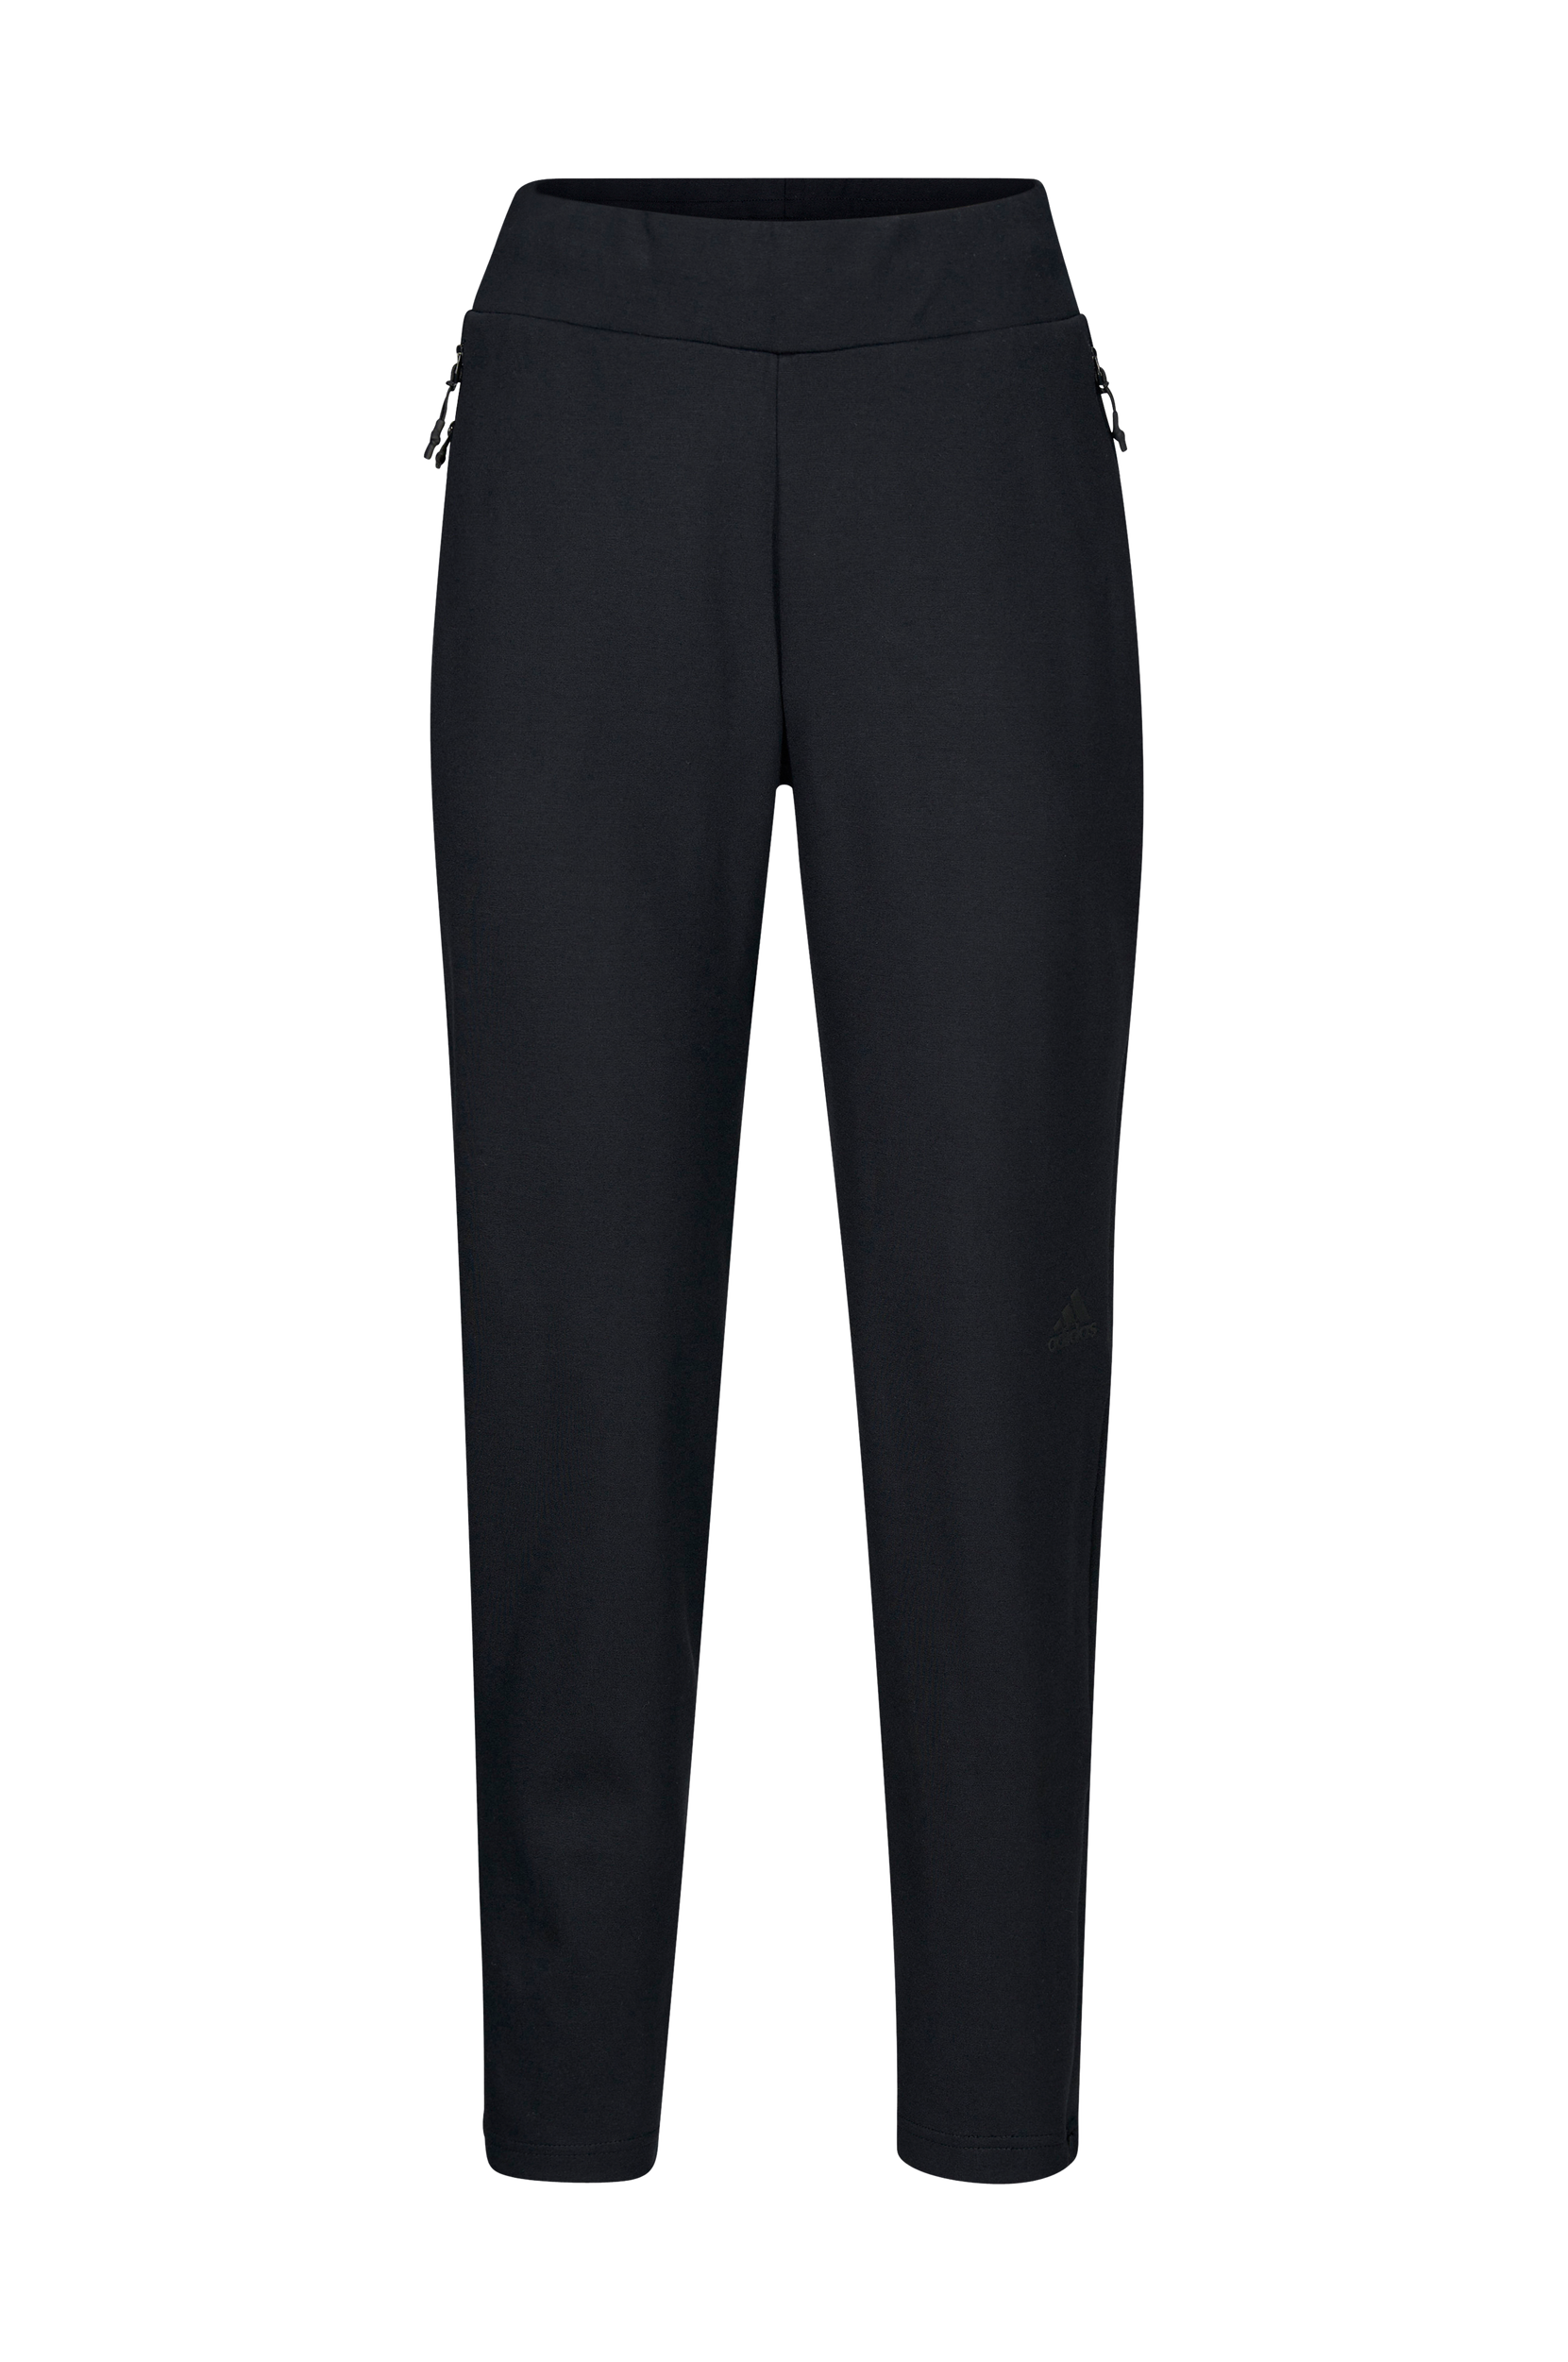 Z.N.E-collegehousut Striker Pant